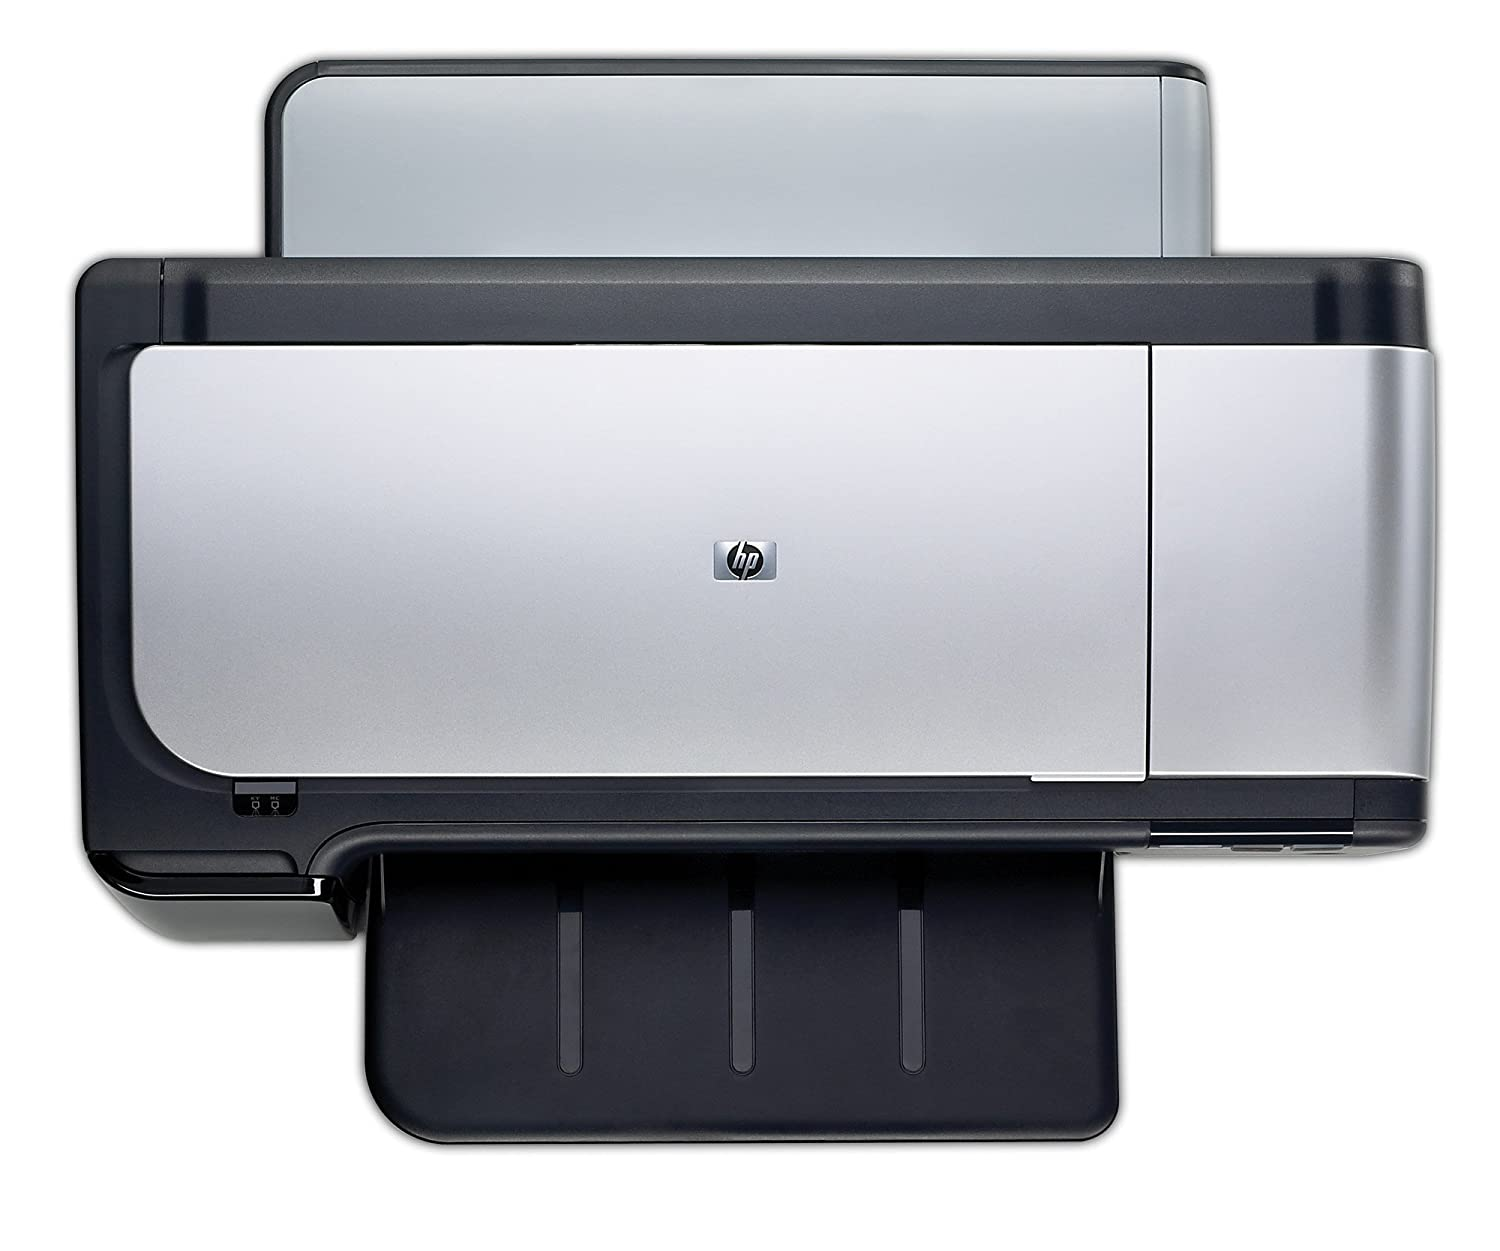 HP Officejet Pro K8600dn - Impresora de tinta color (35 ppm ...